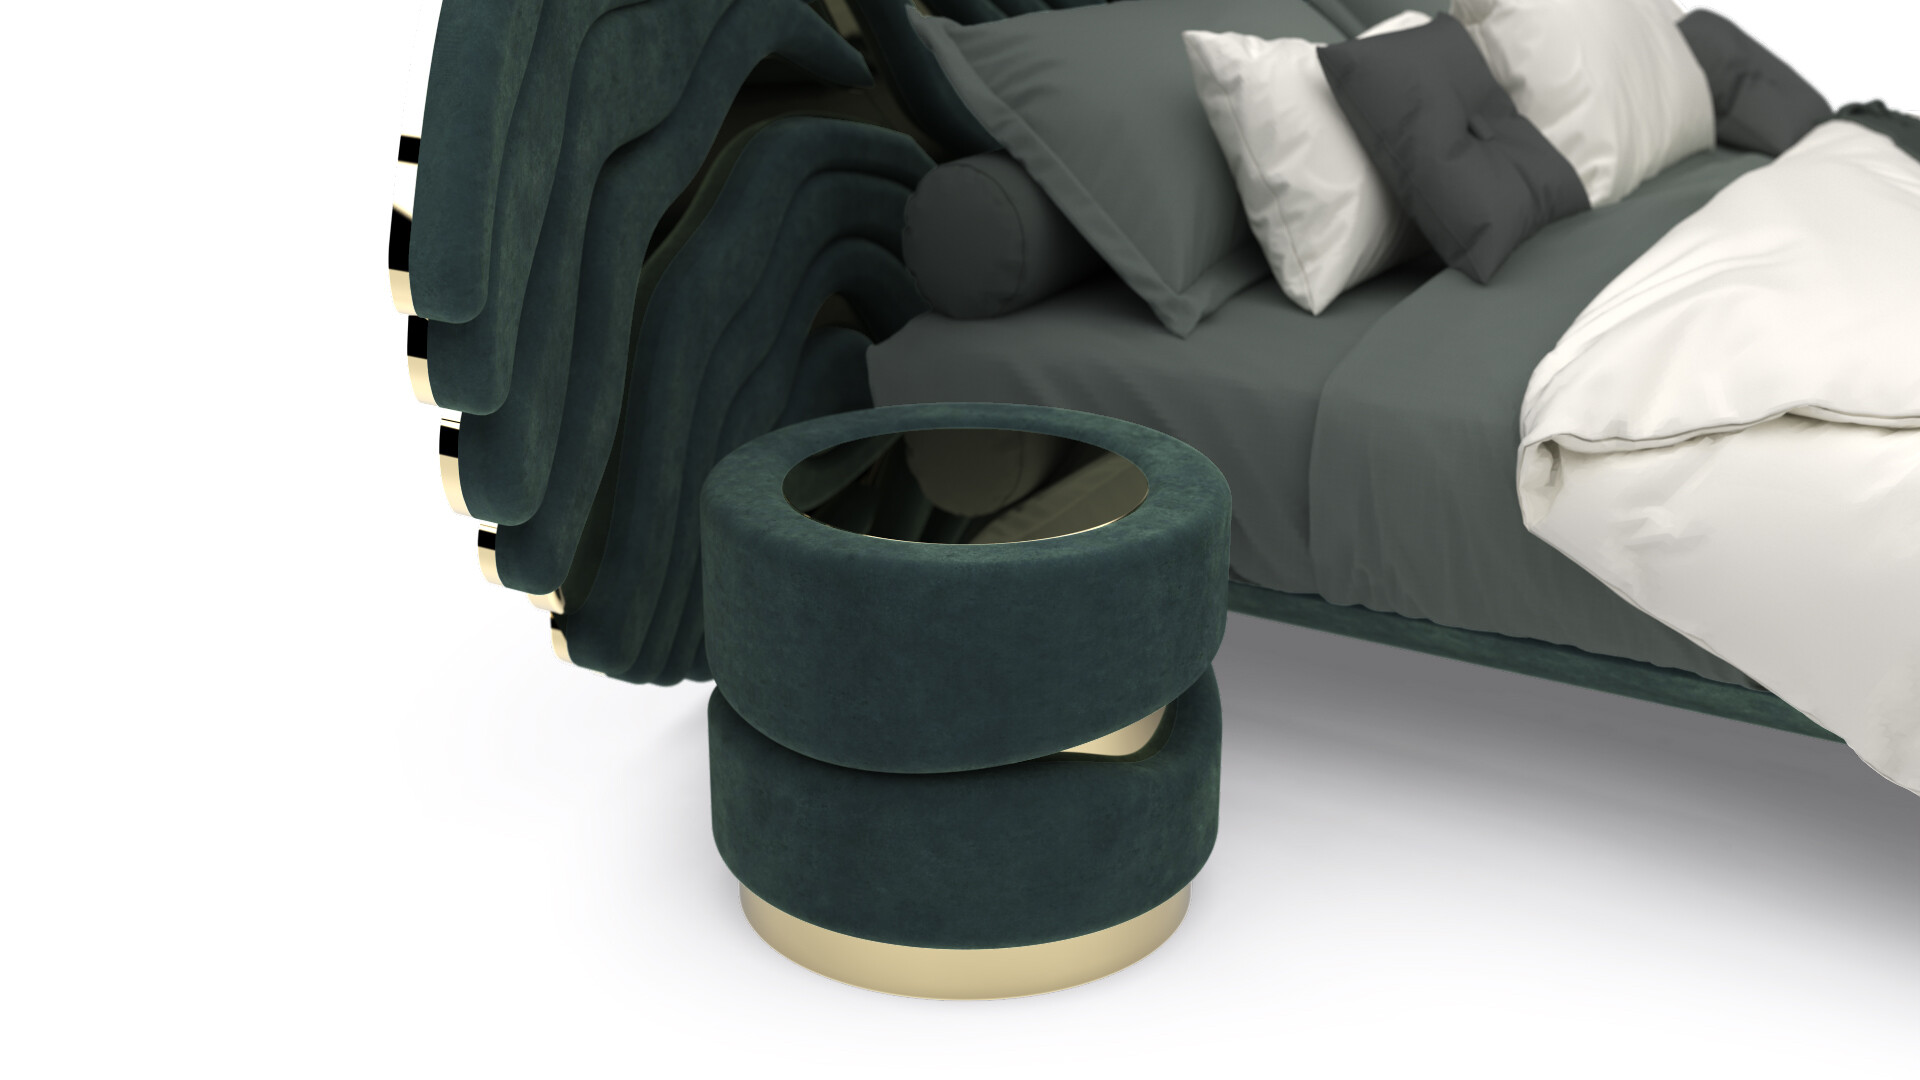 DOURO BED set - Bed Stand 1 Detail View - ALMA de LUCE